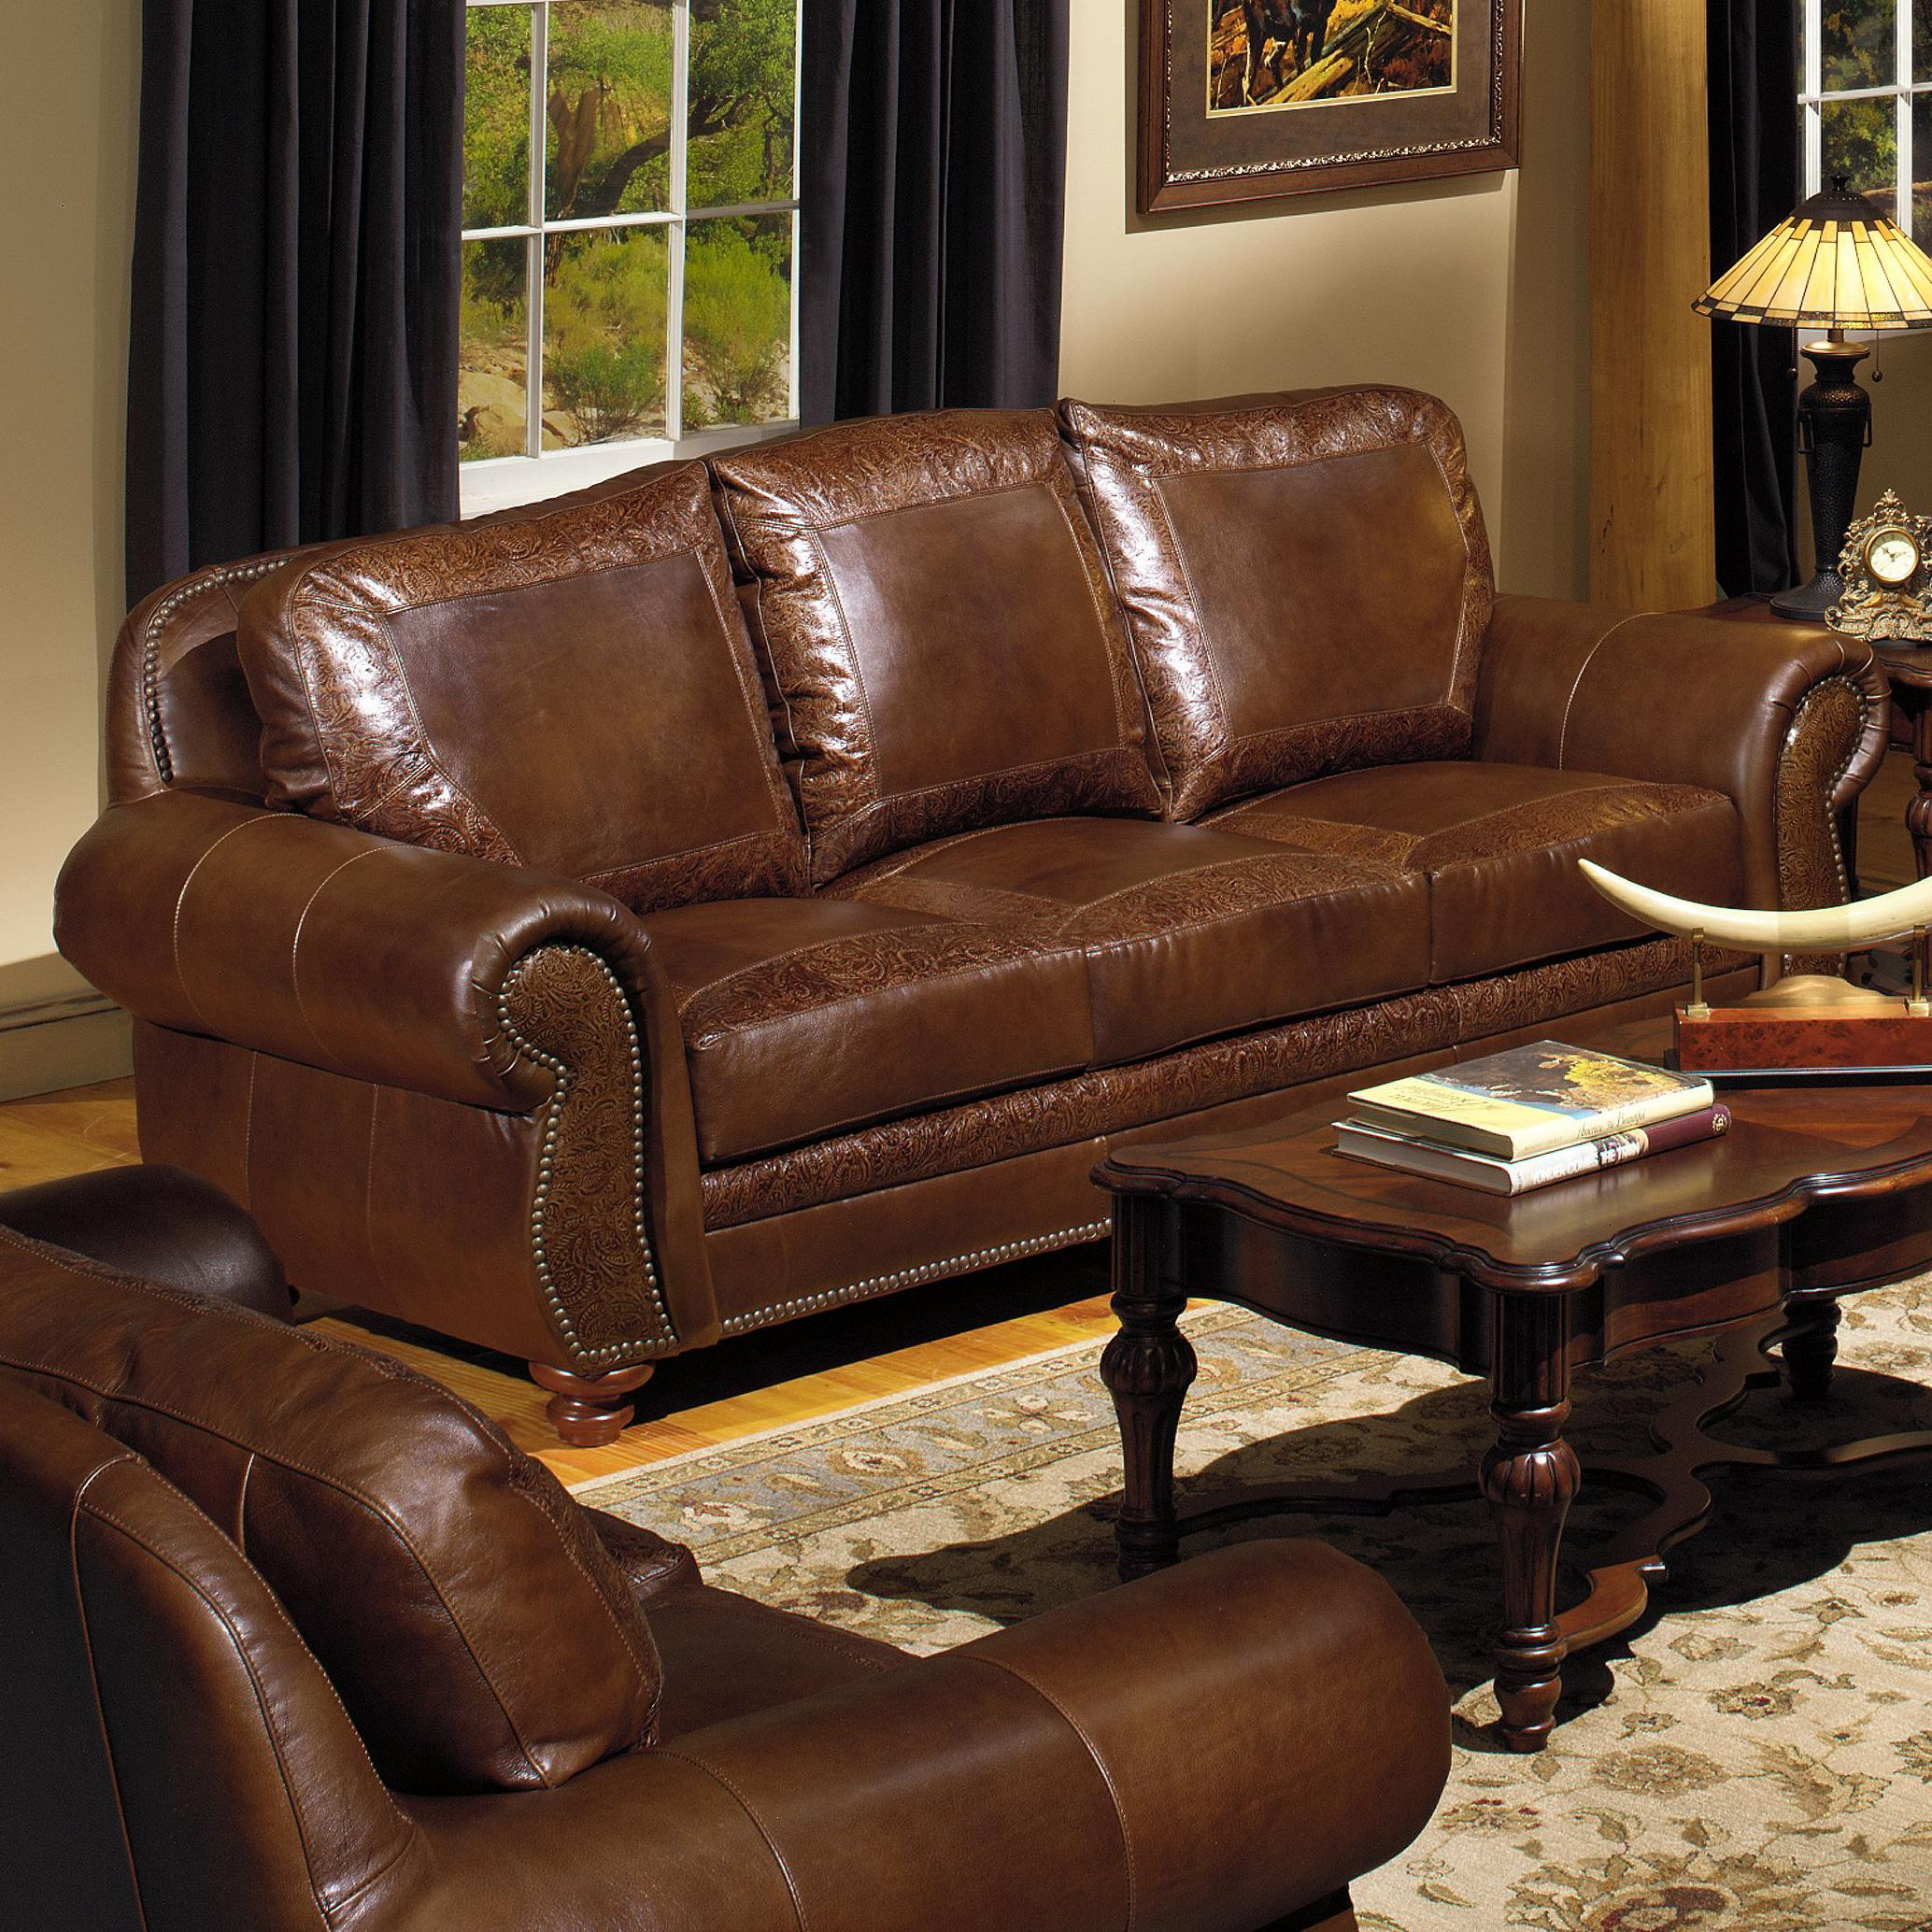 Ordinaire Traditional Leather Sofa With Nailhead Trim